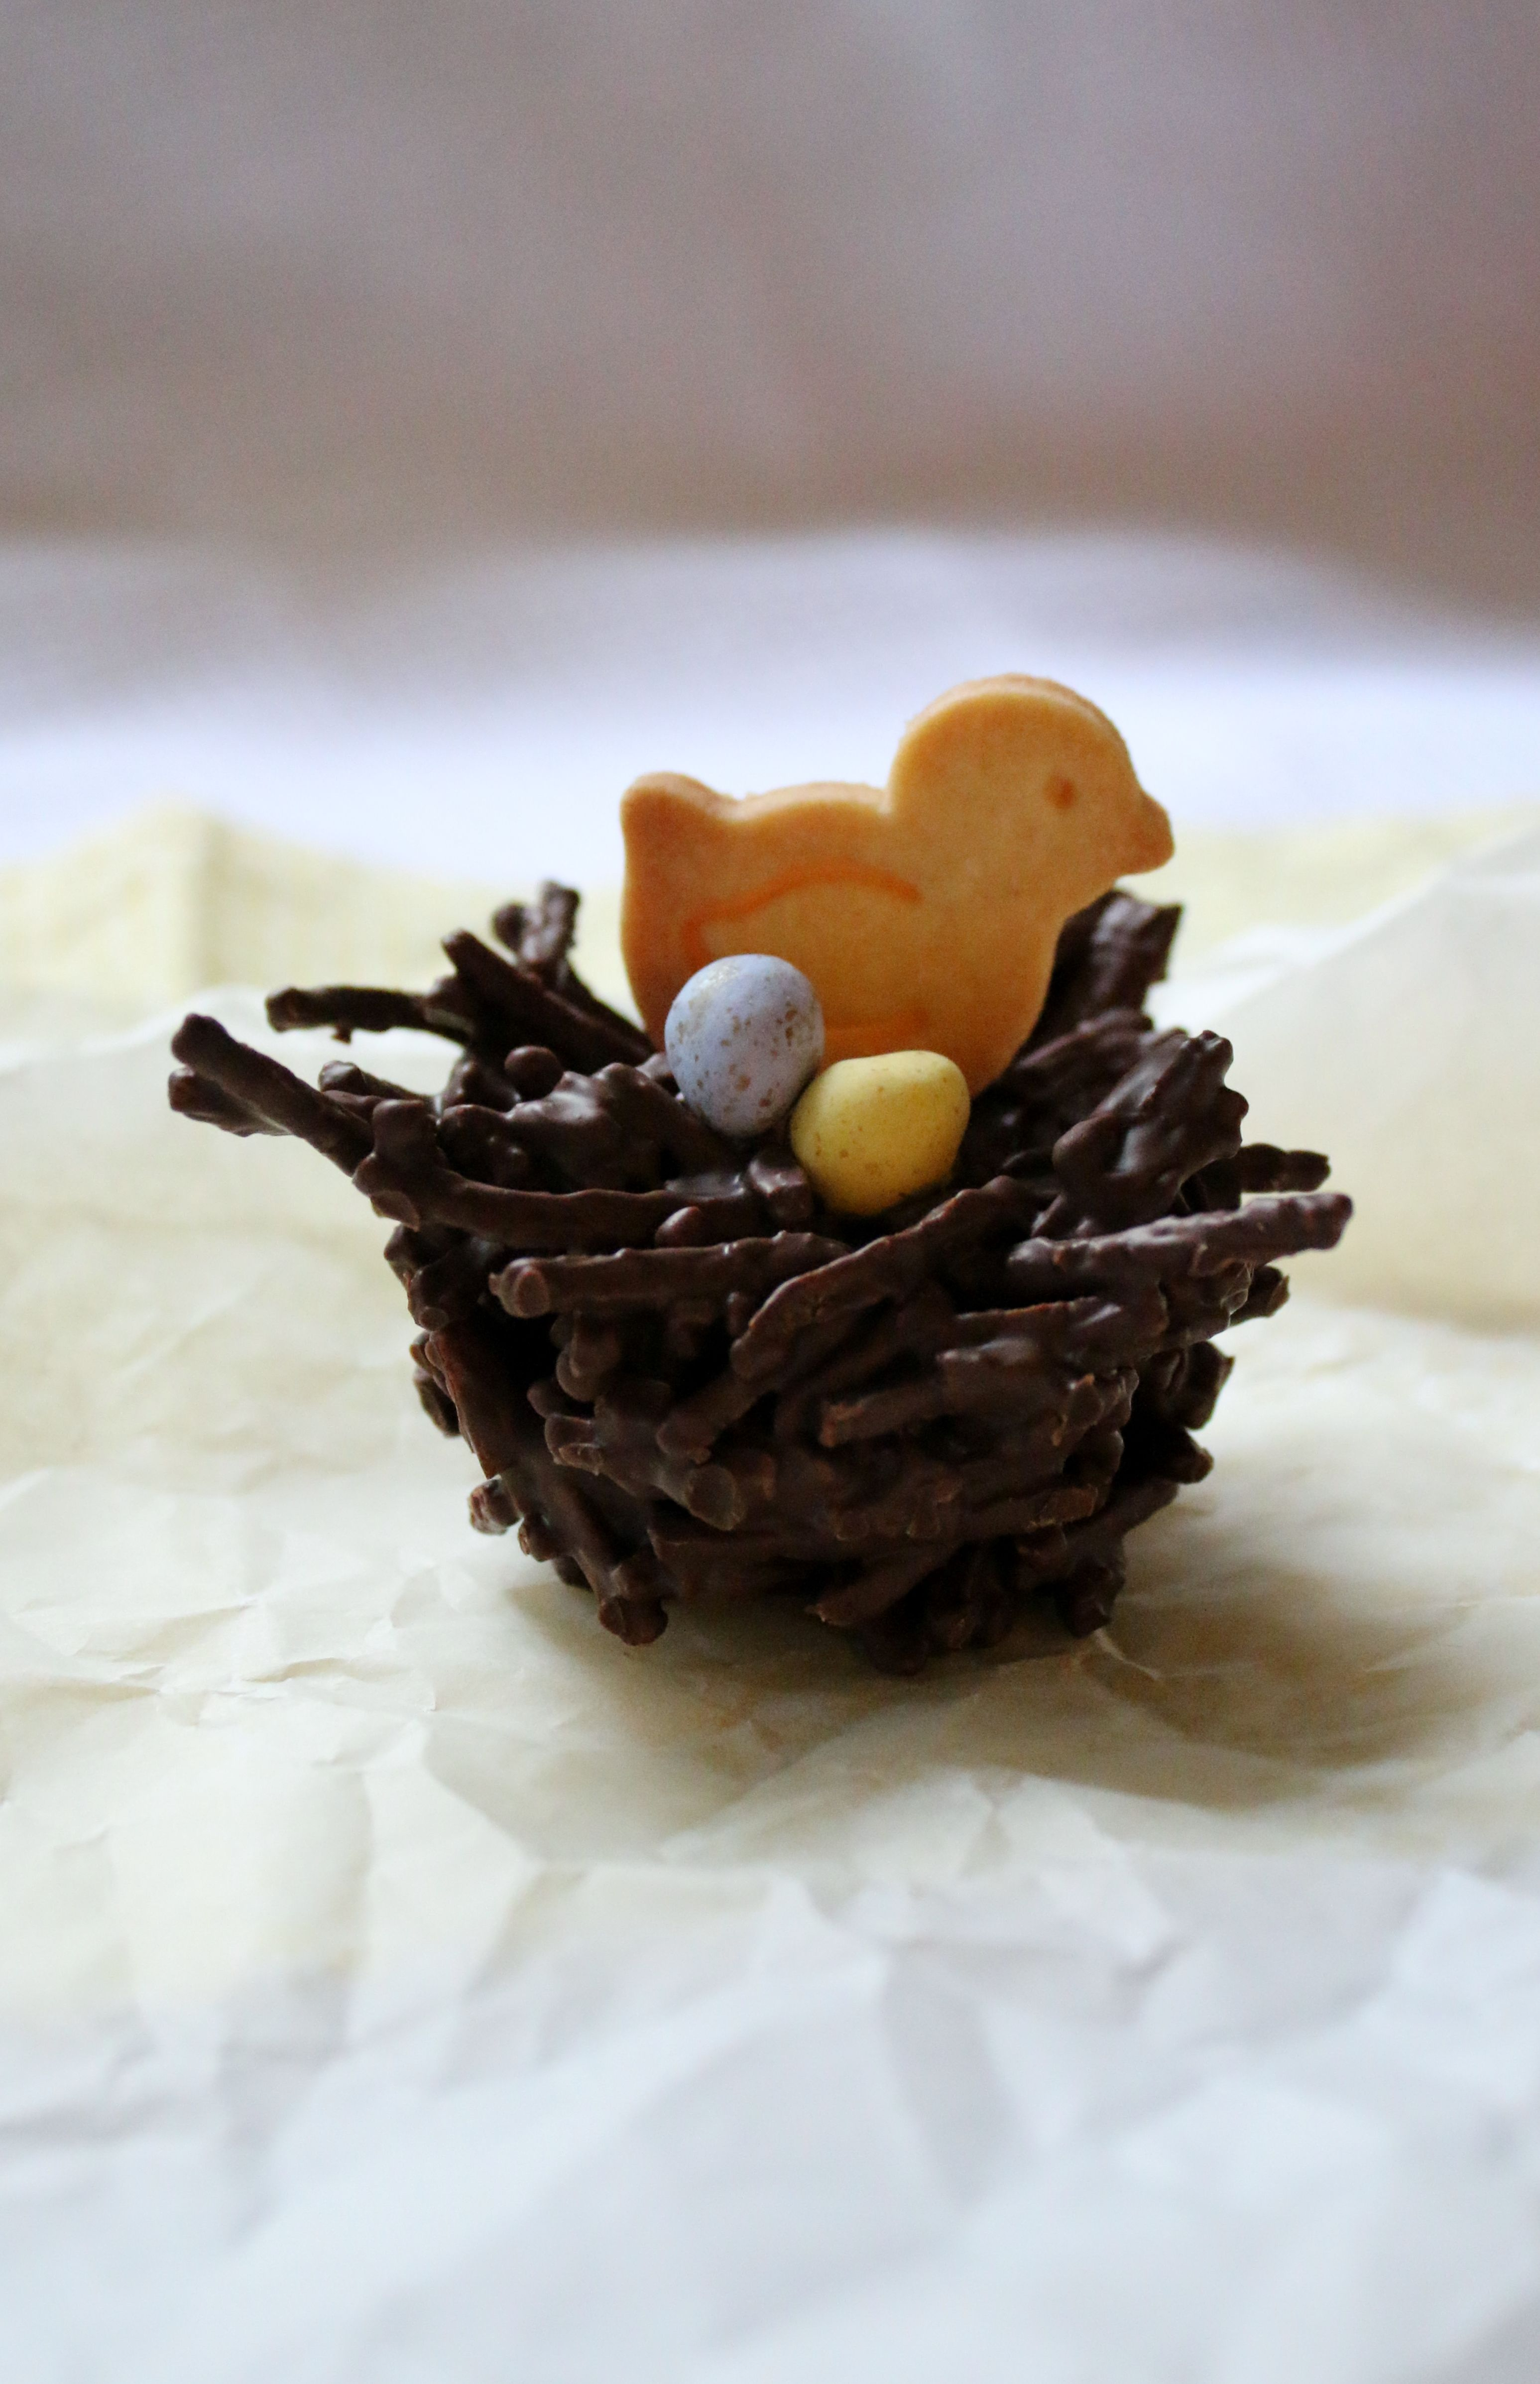 Easter chocolate shredded wheat nests with a pastry chick